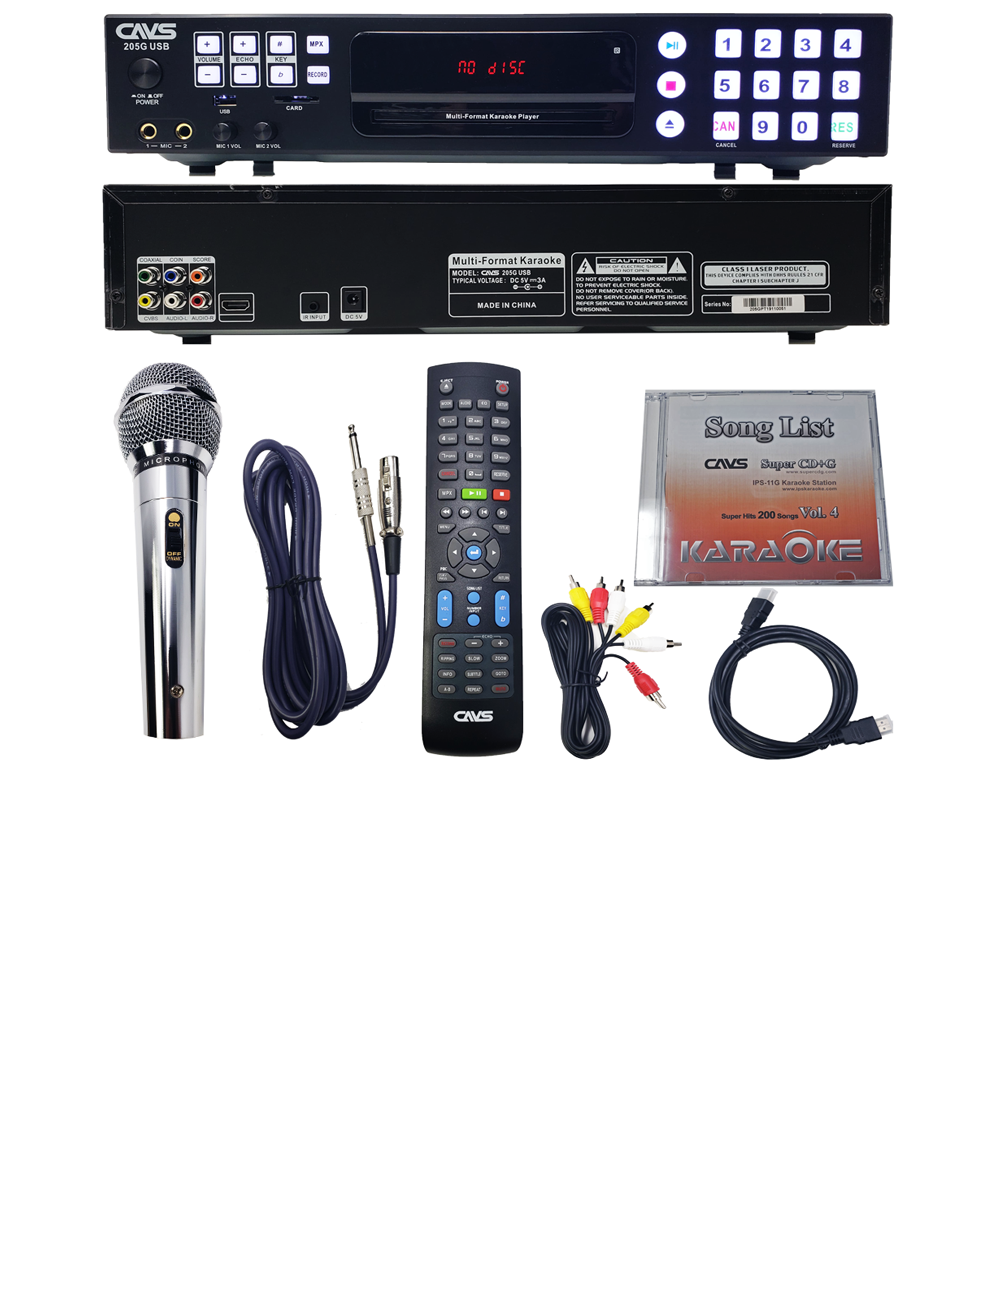 NEW CAVS 205G USB PRO KARAOKE PLAYER PACKAGE